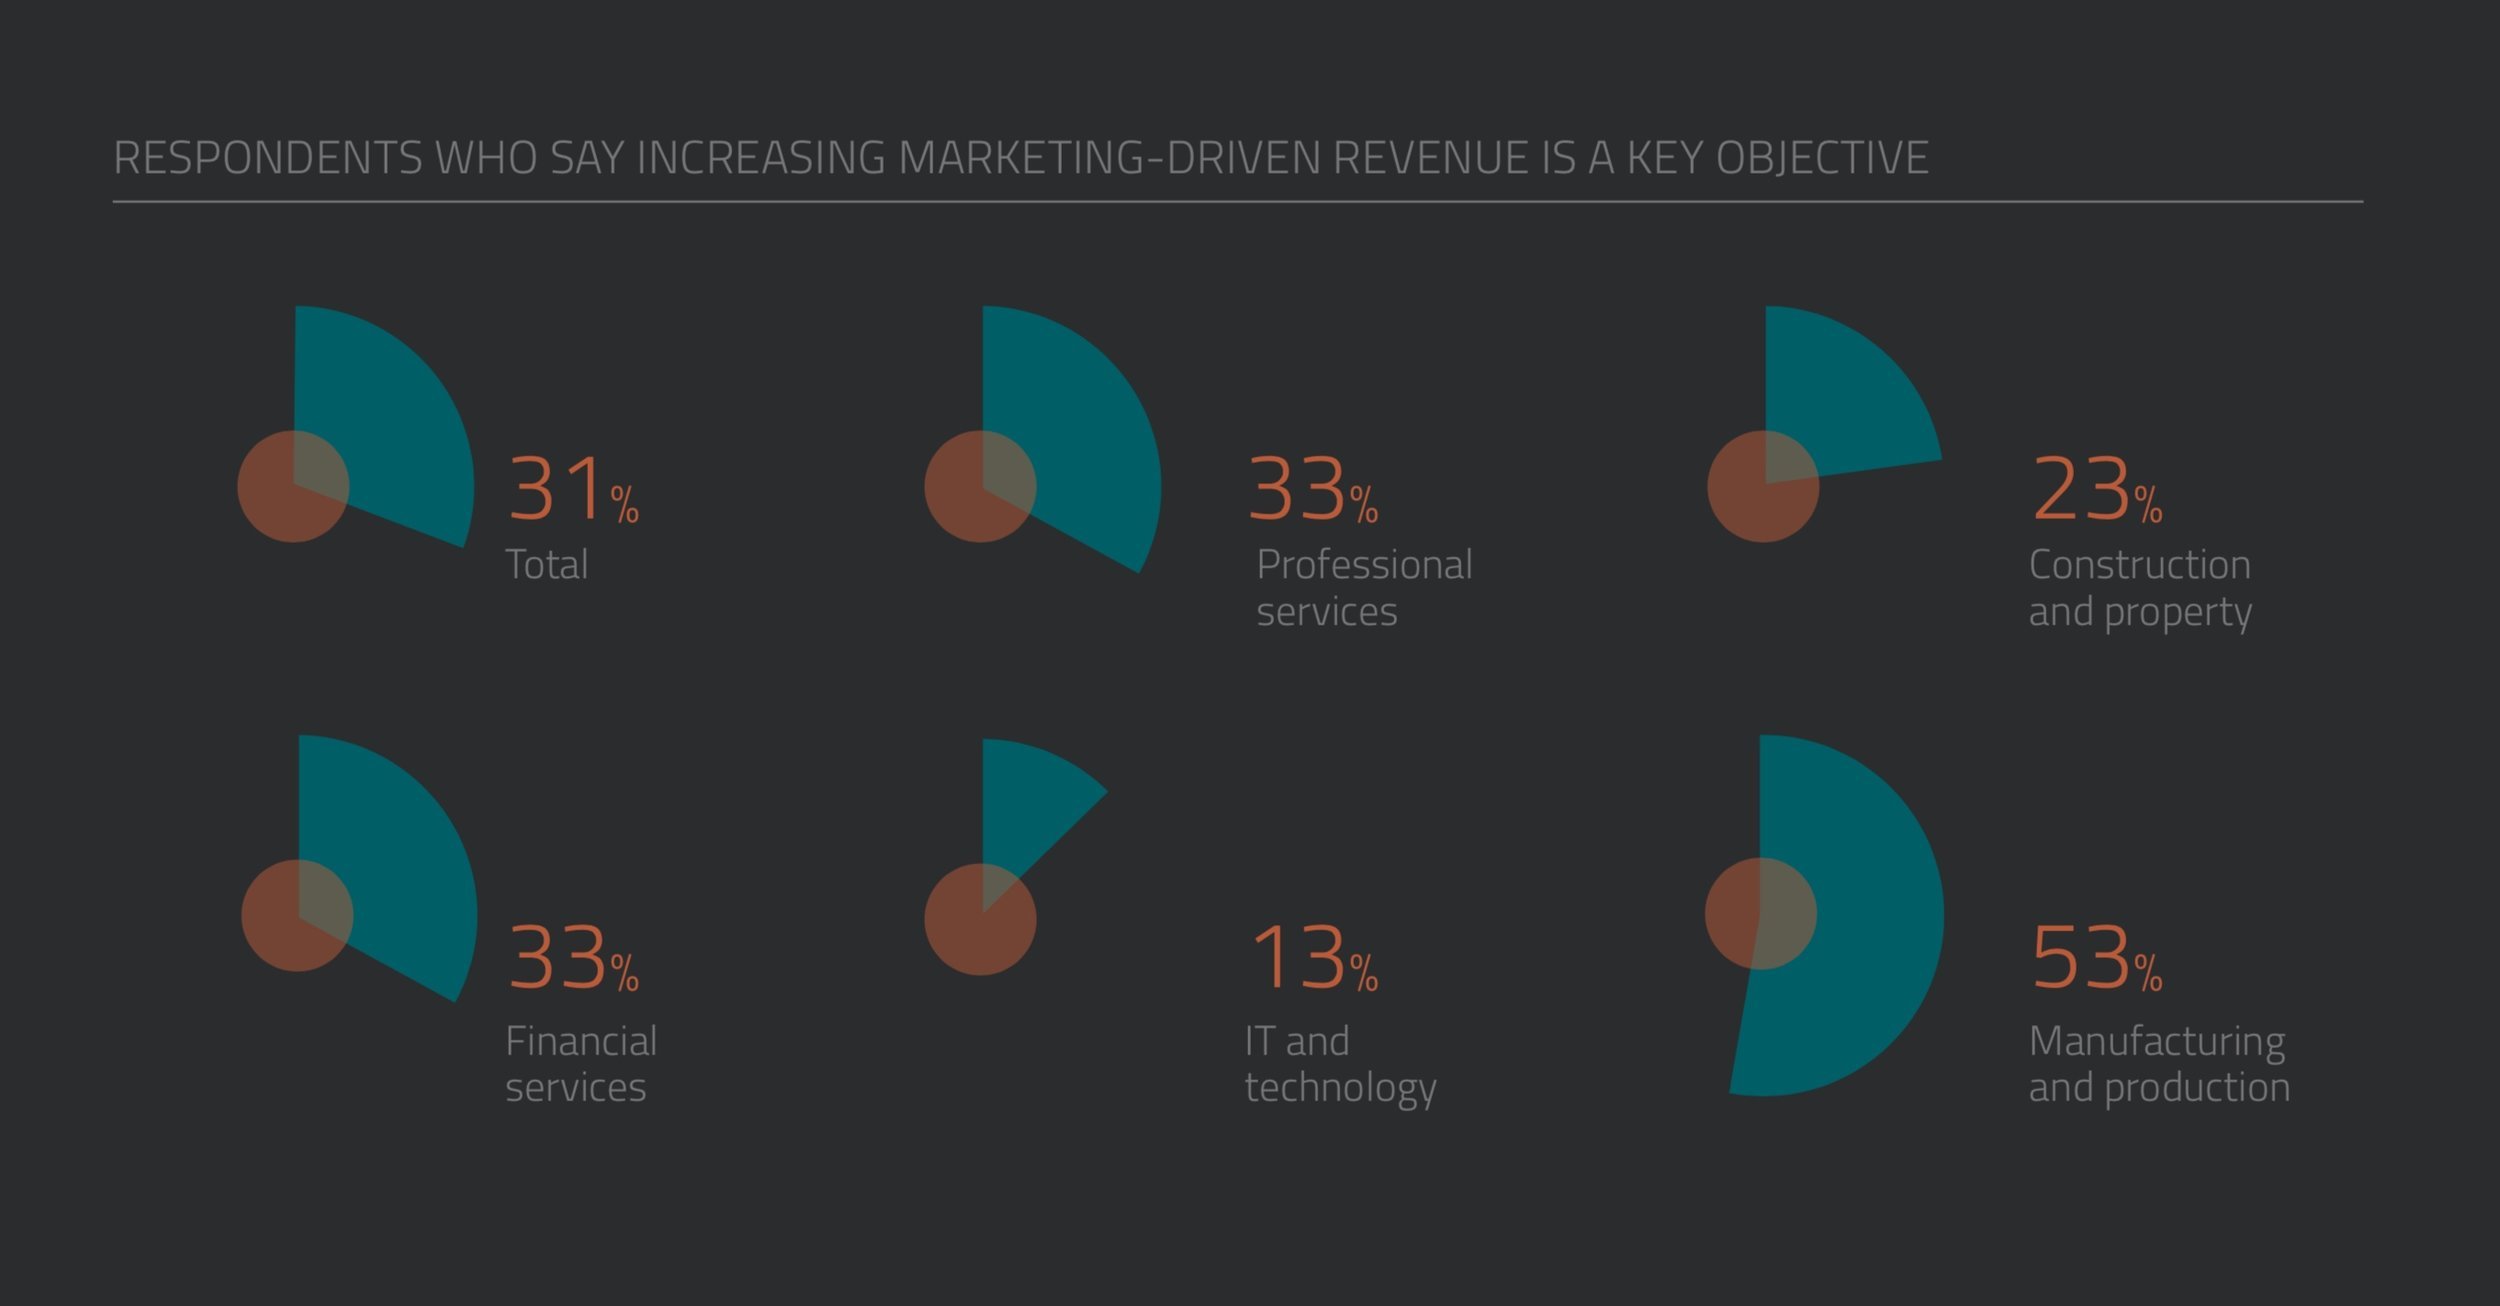 Increasing marketing-driven revenue is a key B2B marketing objective